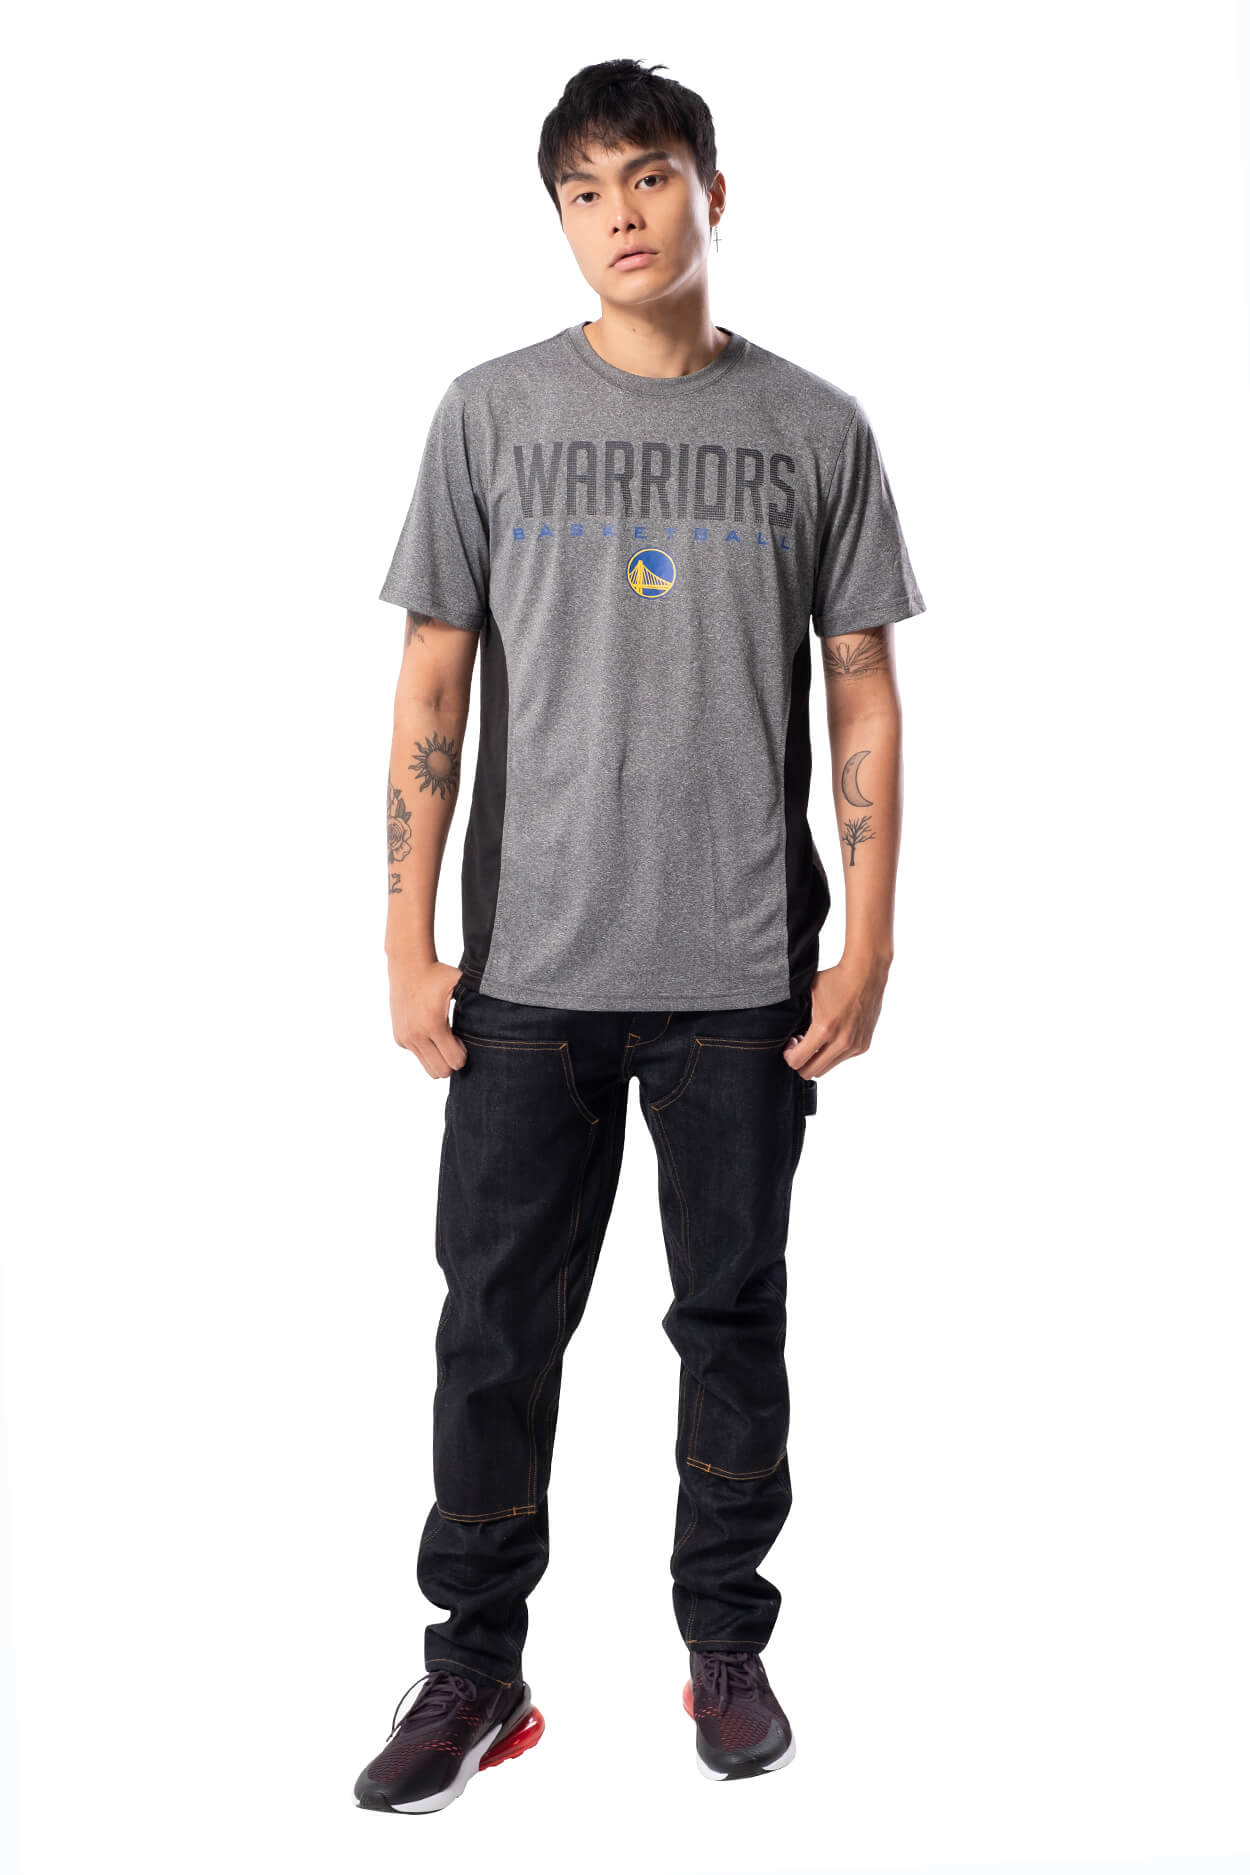 NBA Golden State Warriors Men's Short Sleeve Tee|Golden State Warriors